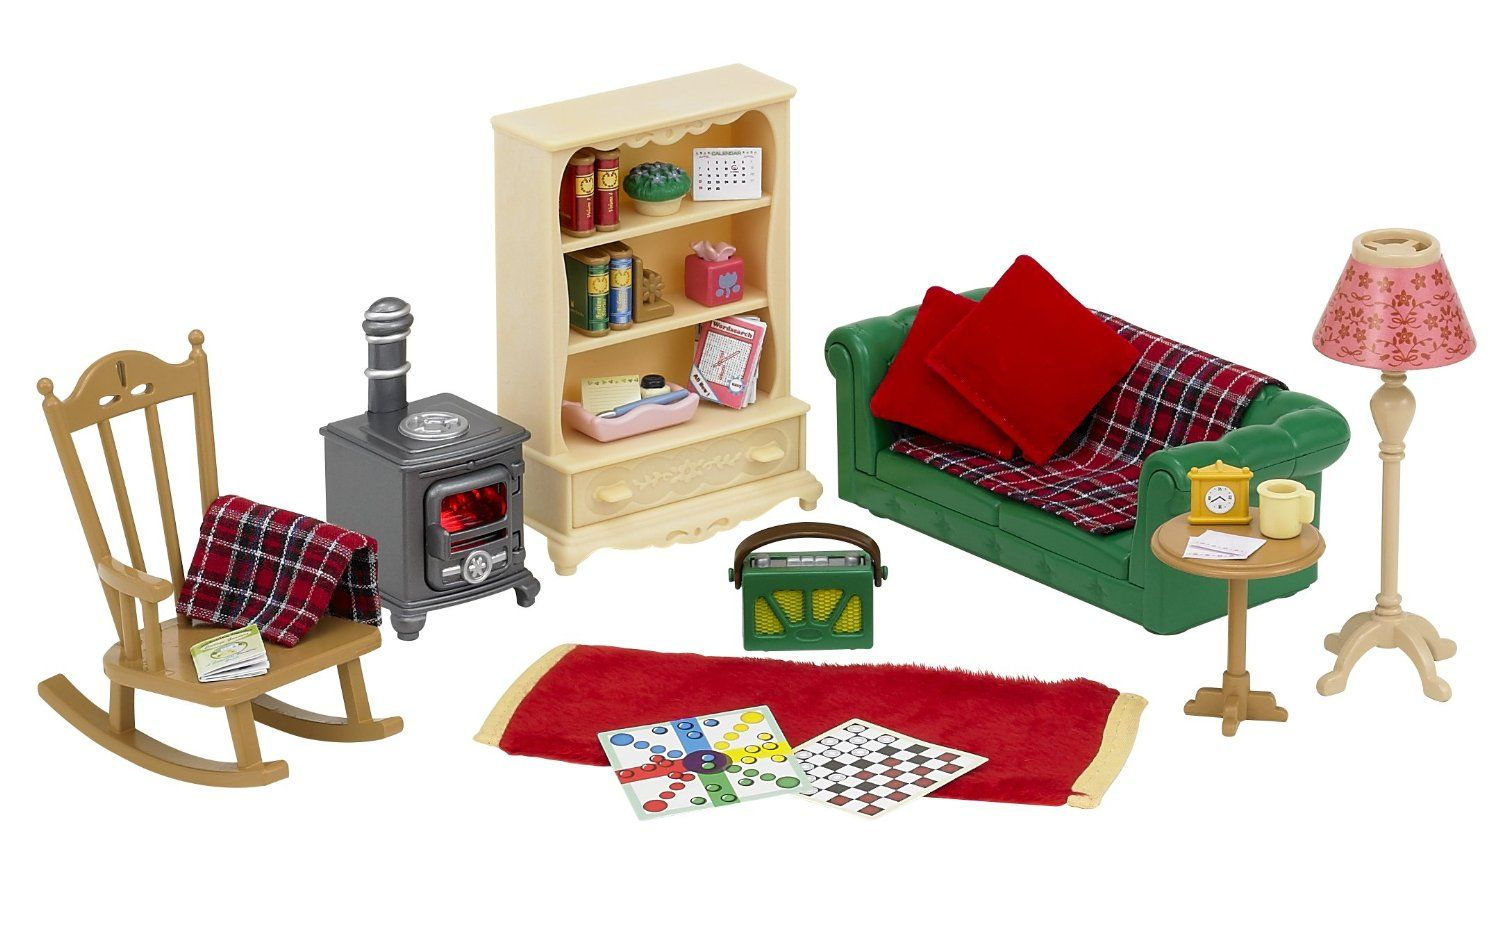 Sylvanian Families Cosy Living Room Set Amazon Co Uk Toys Games Cosy Living Room Sylvanian Families Calico Critters Families